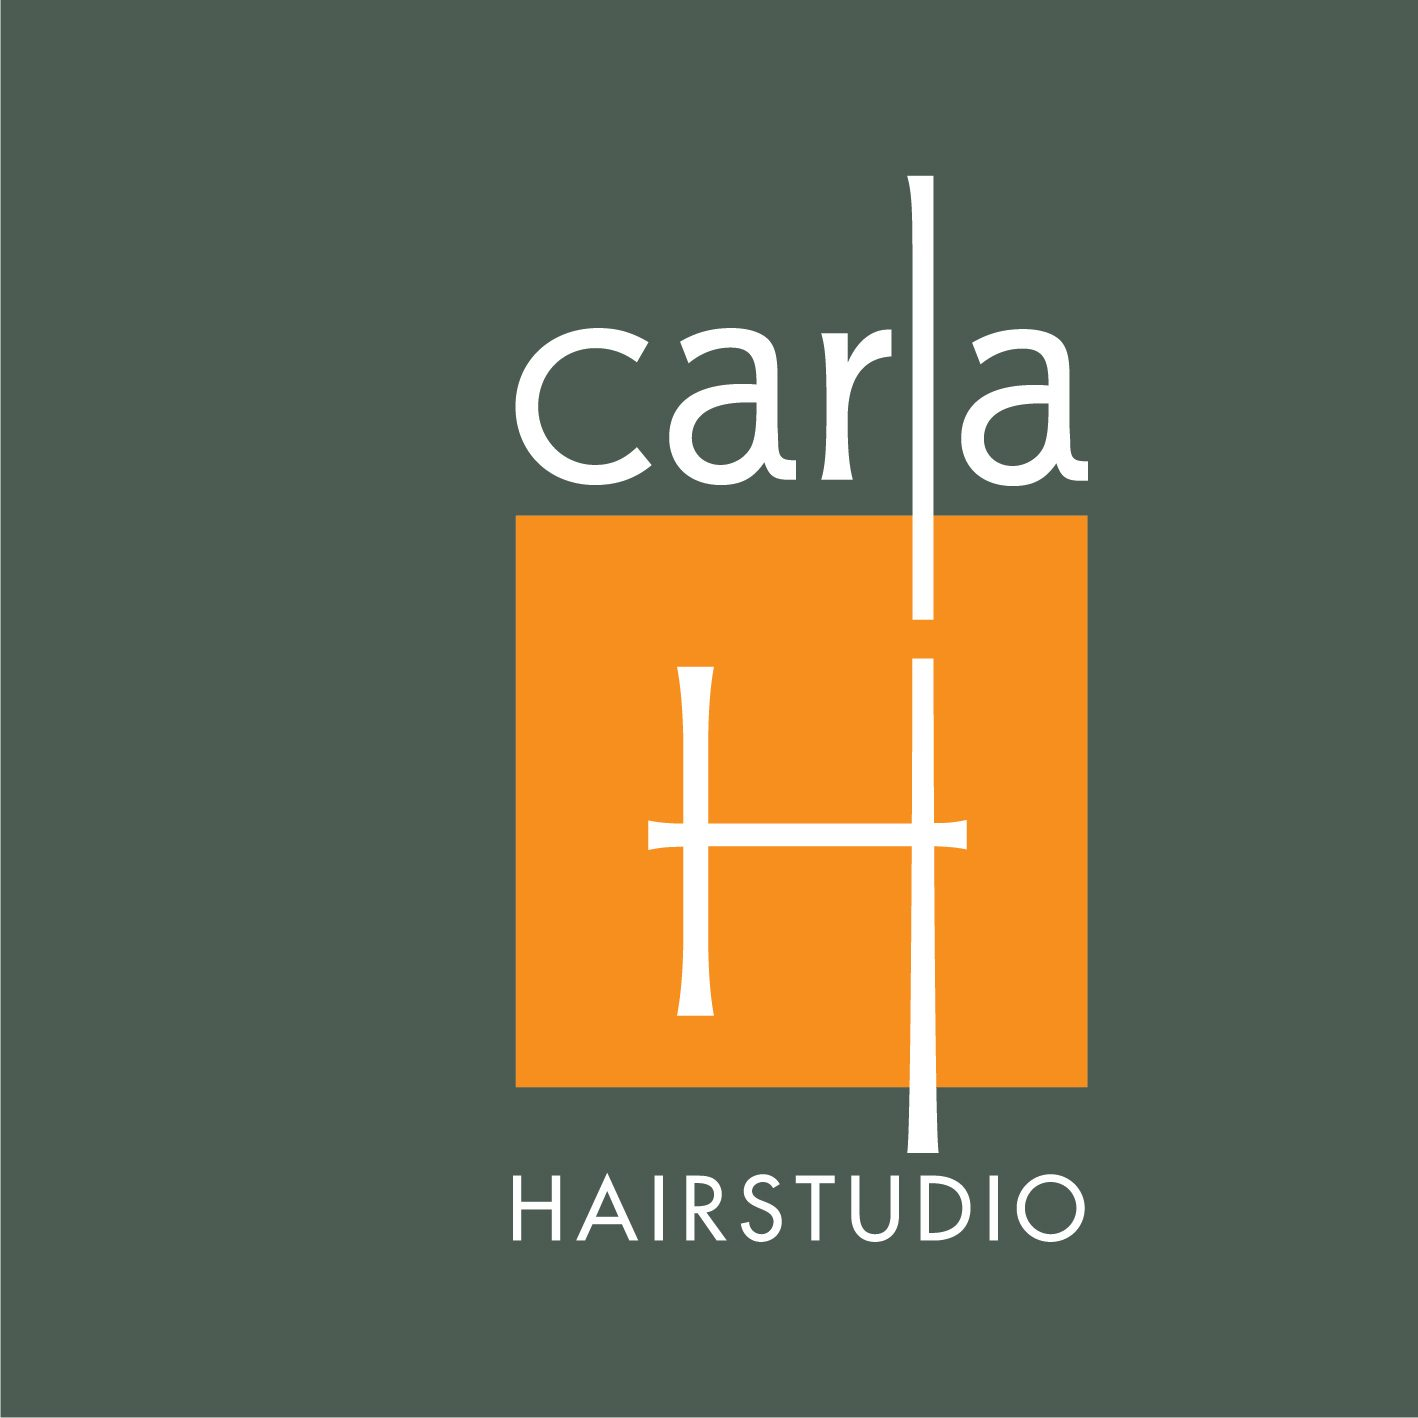 Carla Hairstudio, Master Colourist from Haarlem, Netherlands